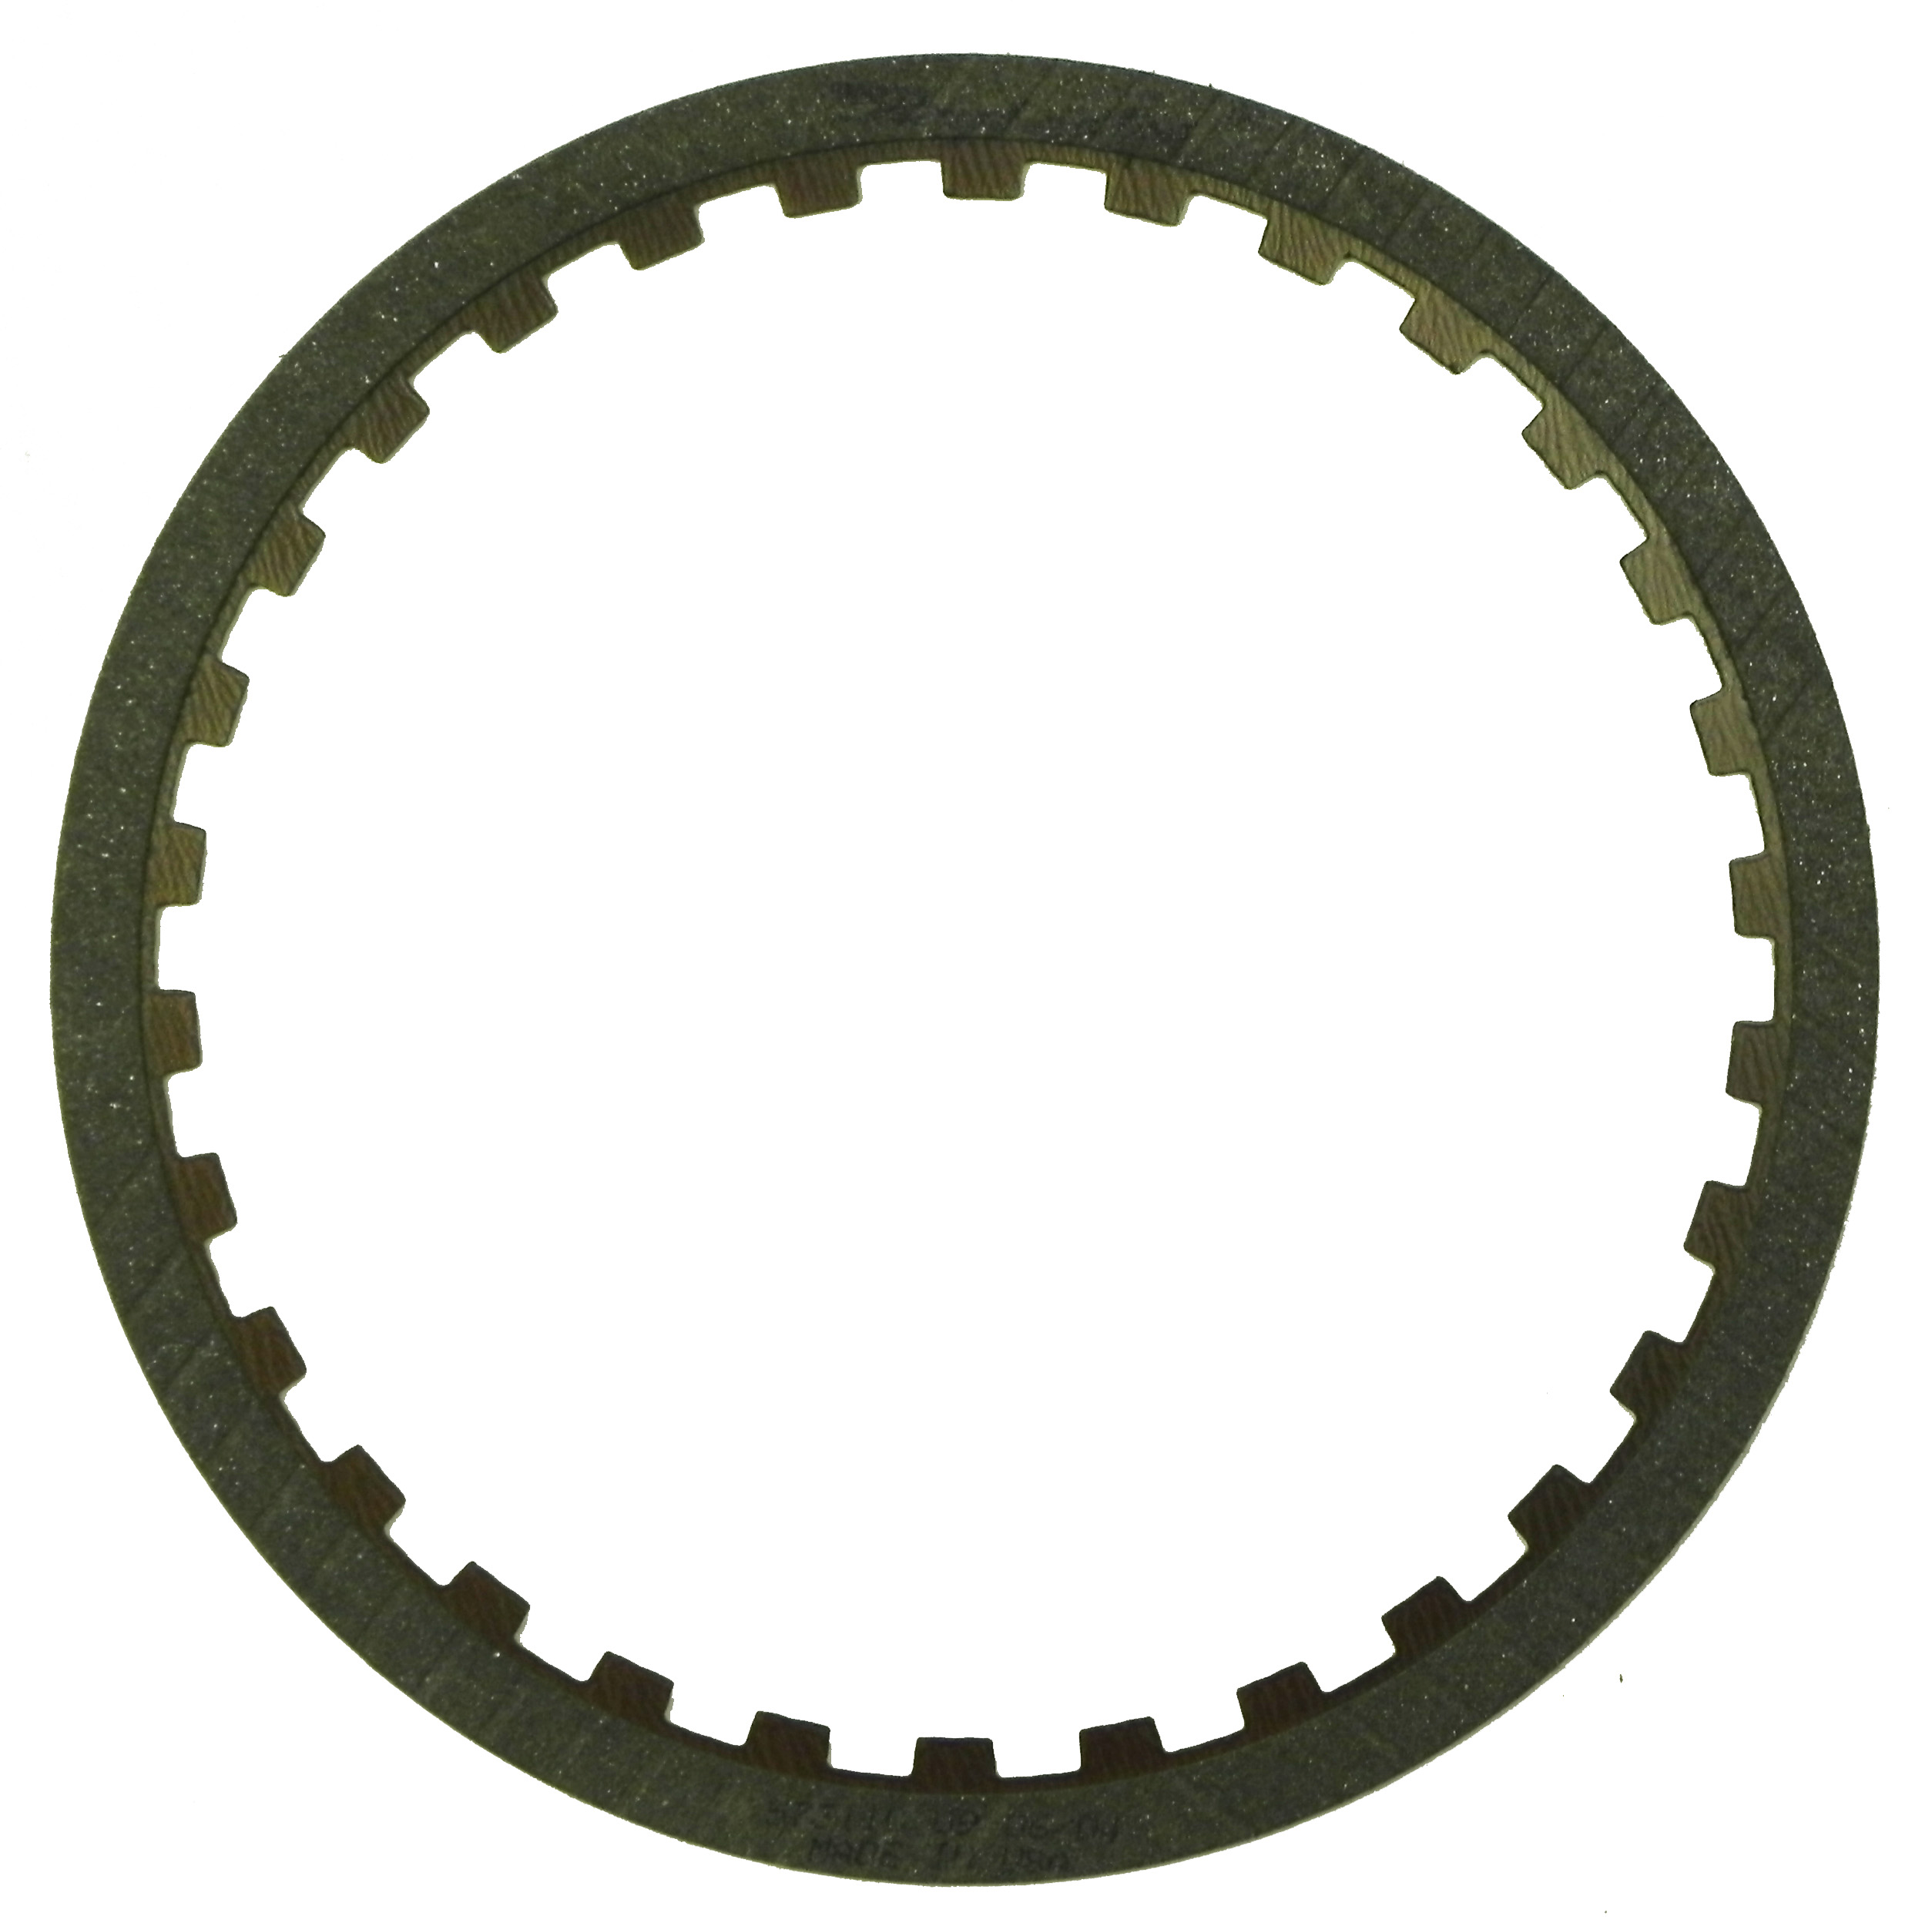 R573110 | 2002-2009 Friction Clutch Plate High Energy Low Clutch High Energy